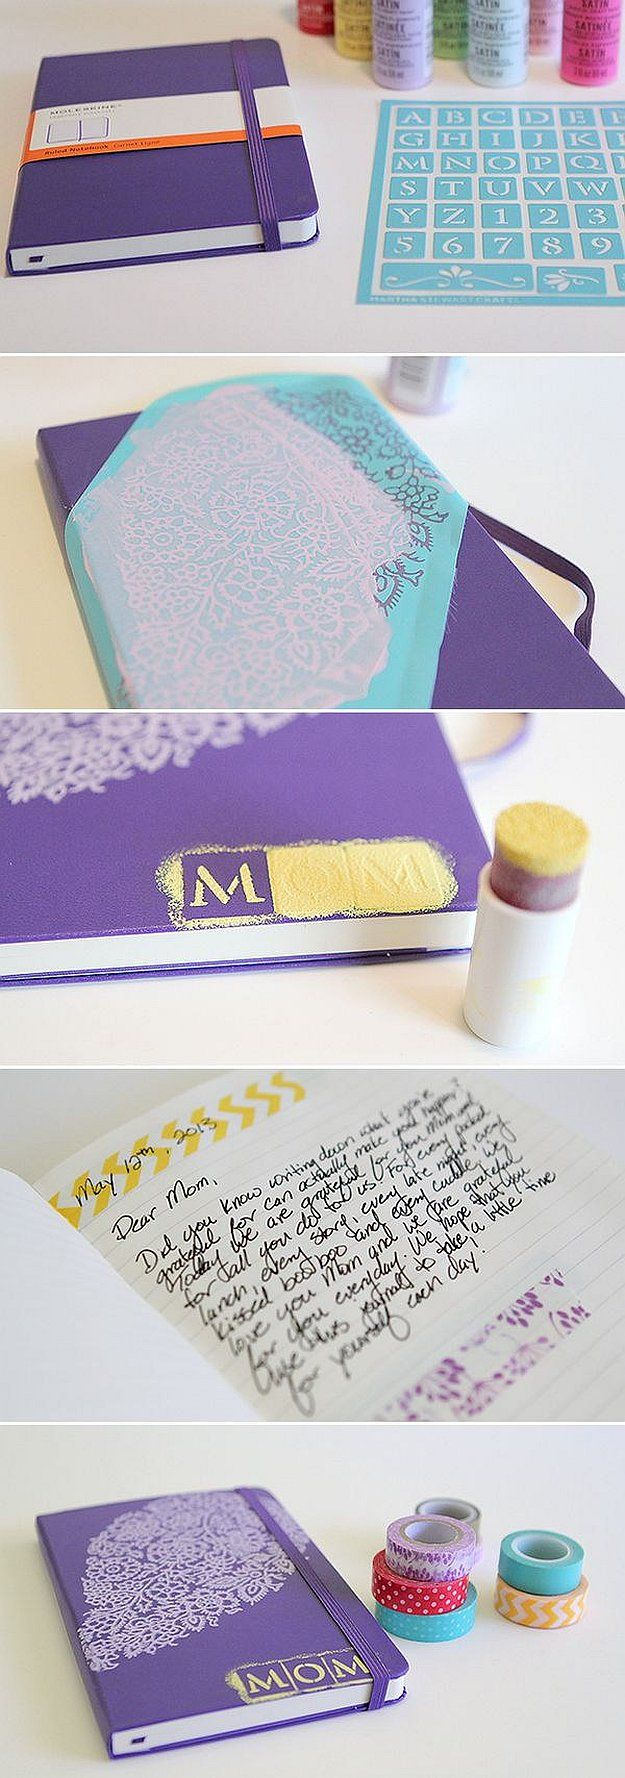 10 DIY Birthday Gift Ideas for Mom | Birthday gifts, Birthdays and ...